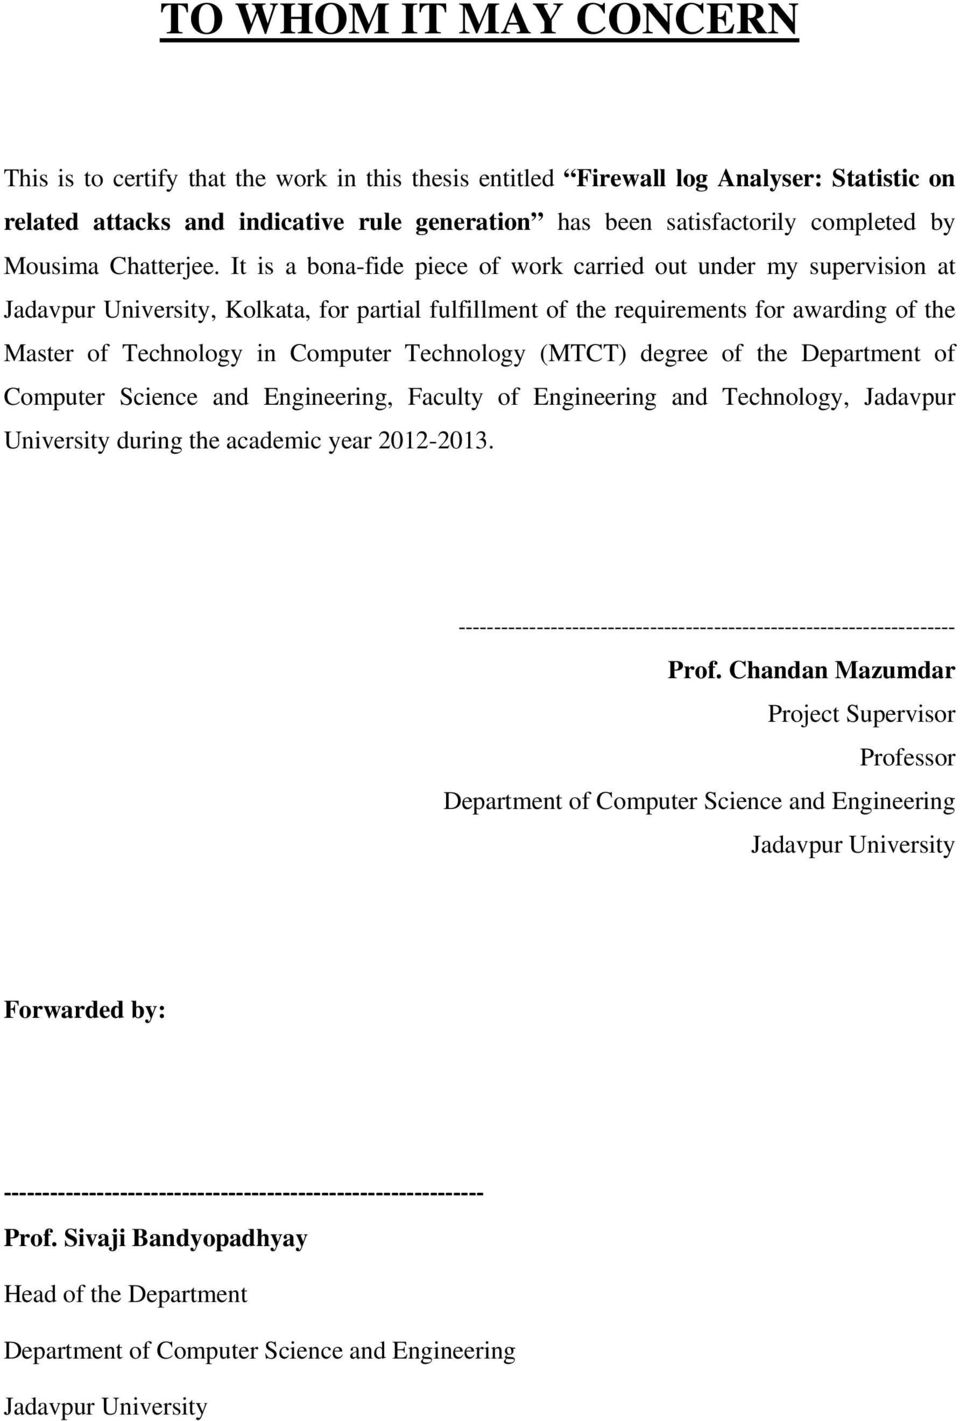 It is a bona-fide piece of work carried out under my supervision at Jadavpur University, Kolkata, for partial fulfillment of the requirements for awarding of the Master of Technology in Computer